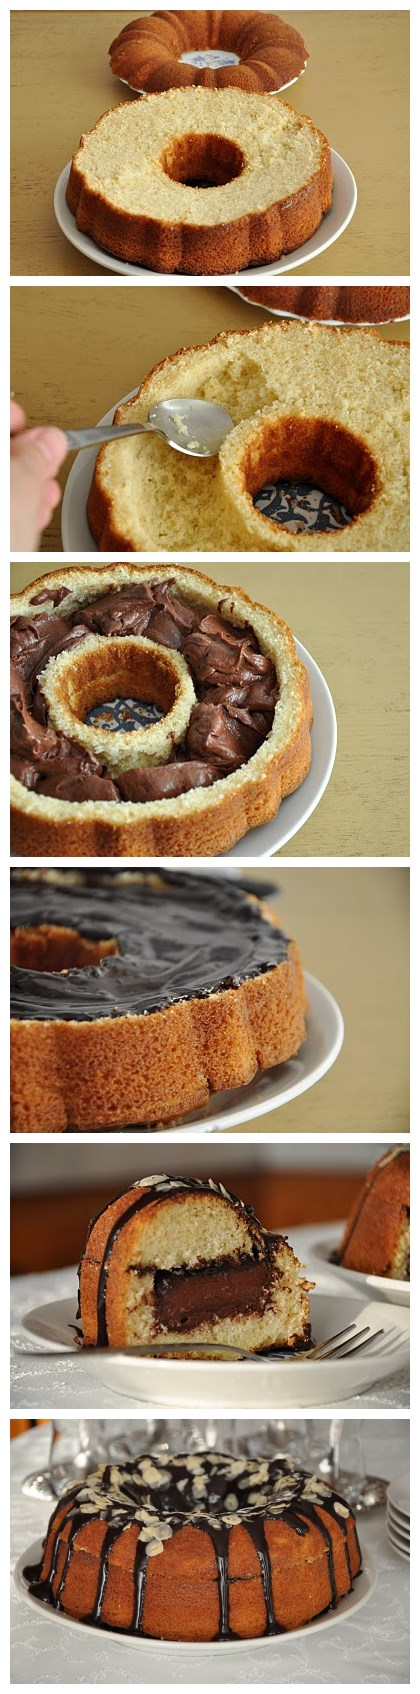 chocolate-filled-cake.jpg